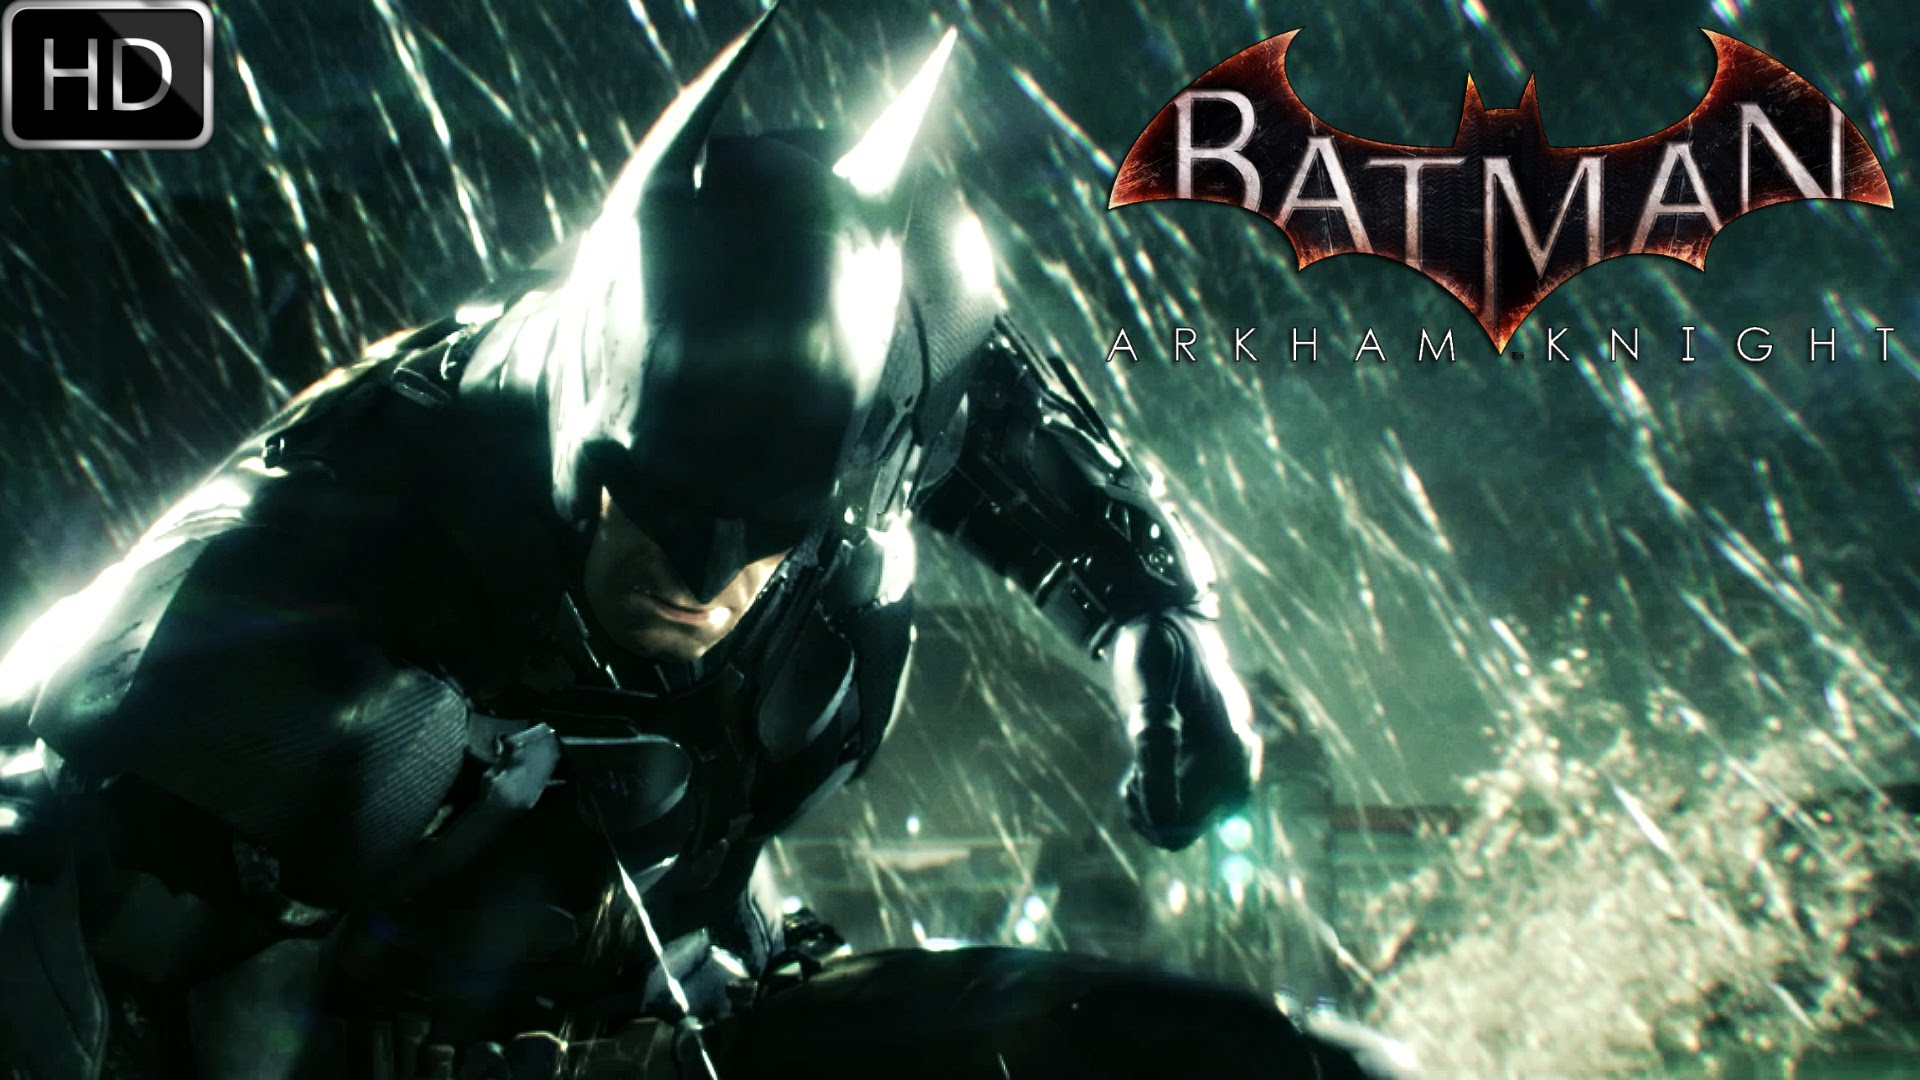 Batman Arkham Knight Wallpaper 1080p Batman Arkham Knight Ace 1920x1080